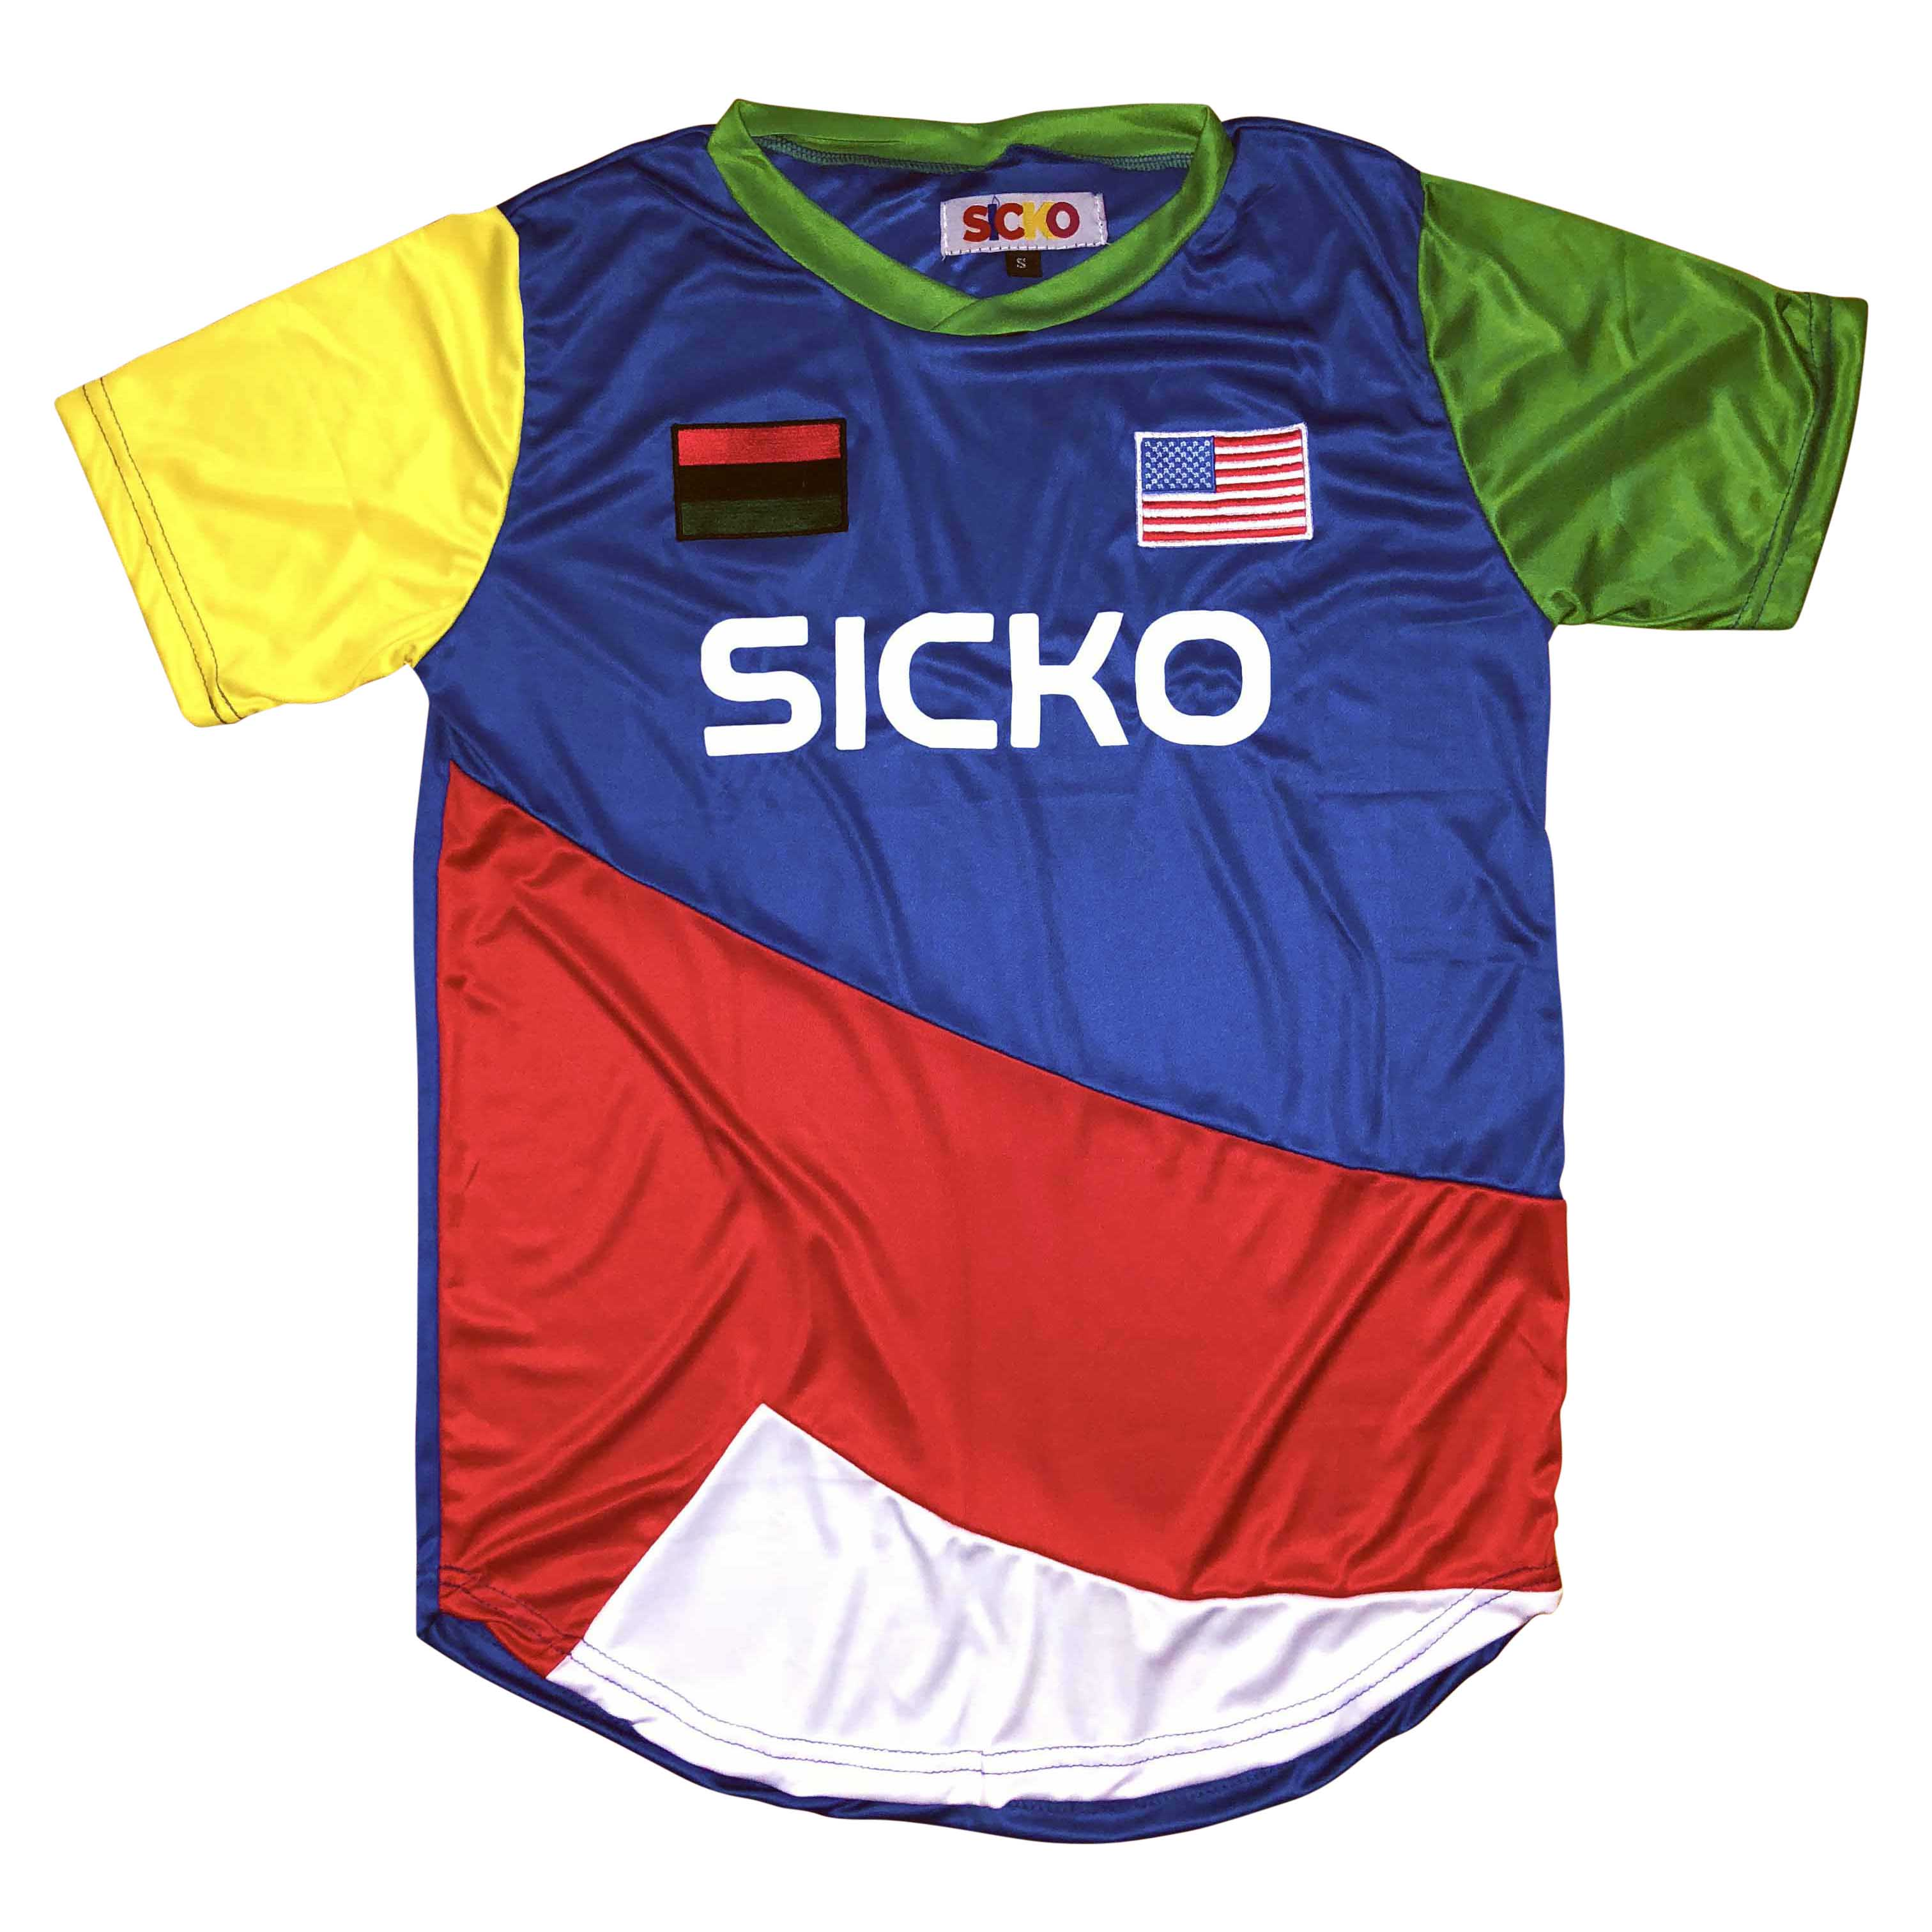 SICKO World Cup Jersey